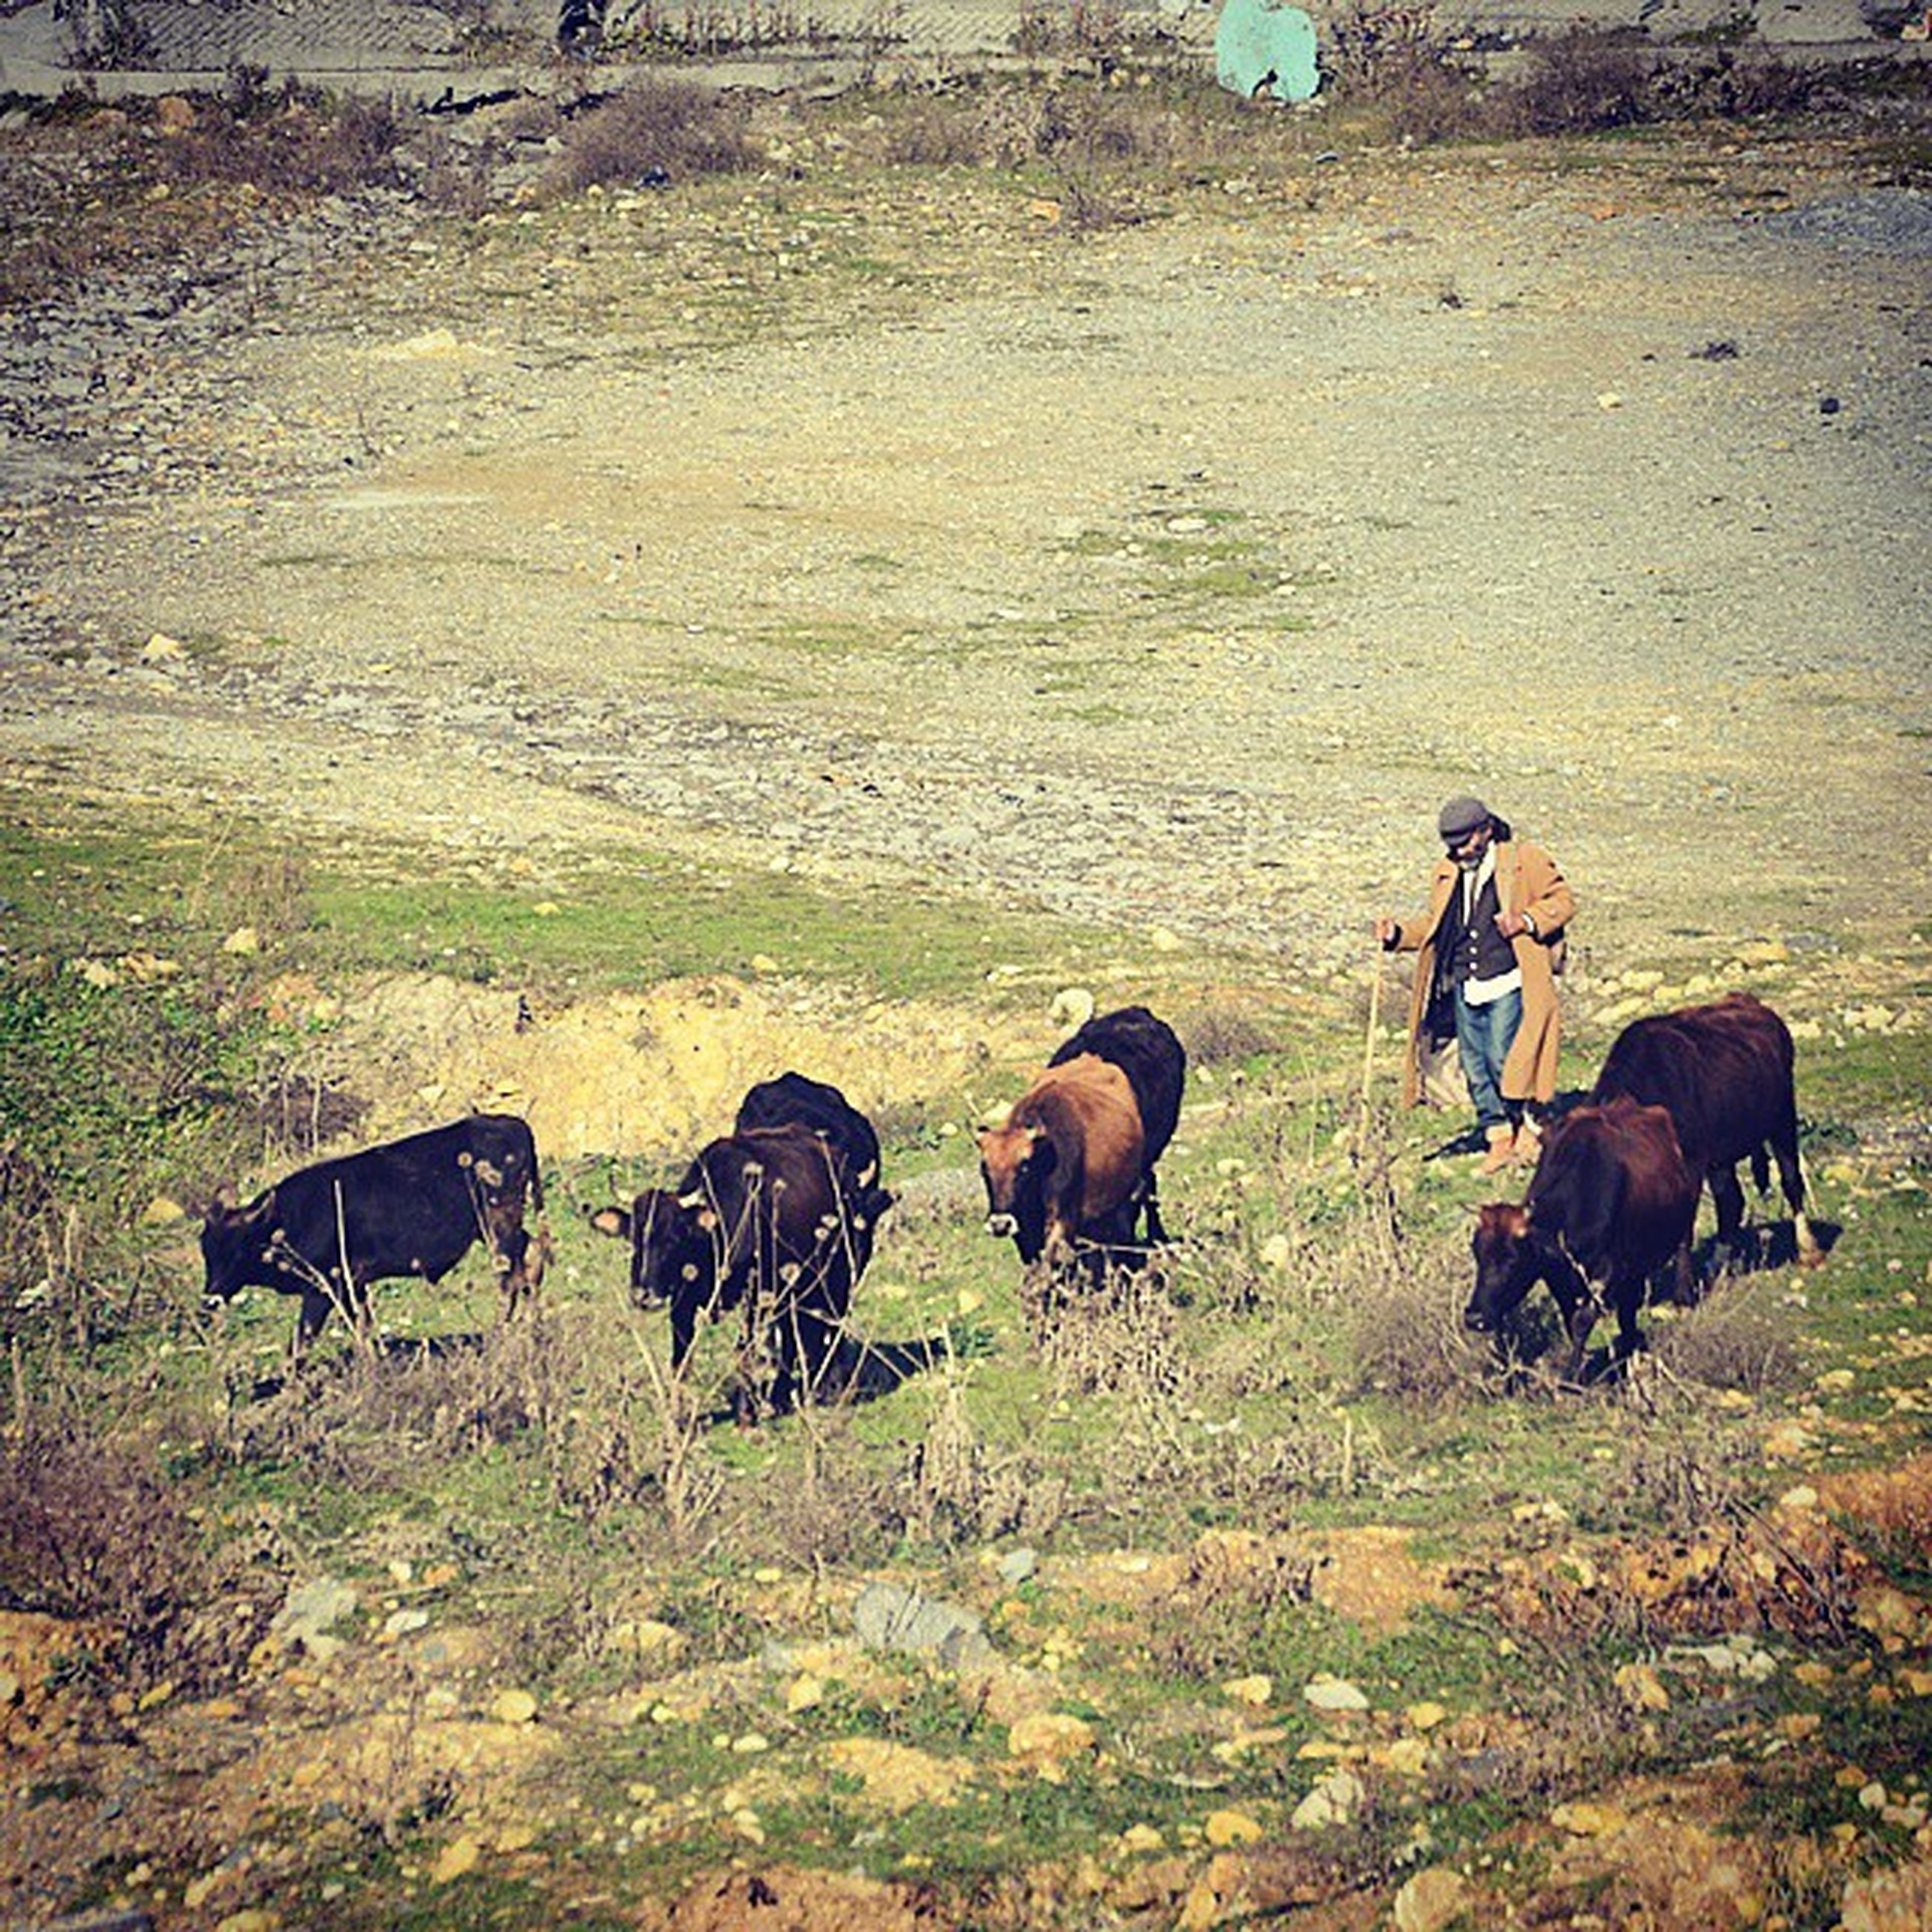 animal themes, domestic animals, livestock, mammal, field, horse, grass, medium group of animals, grazing, herbivorous, cow, landscape, working animal, two animals, togetherness, nature, domestic cattle, standing, four animals